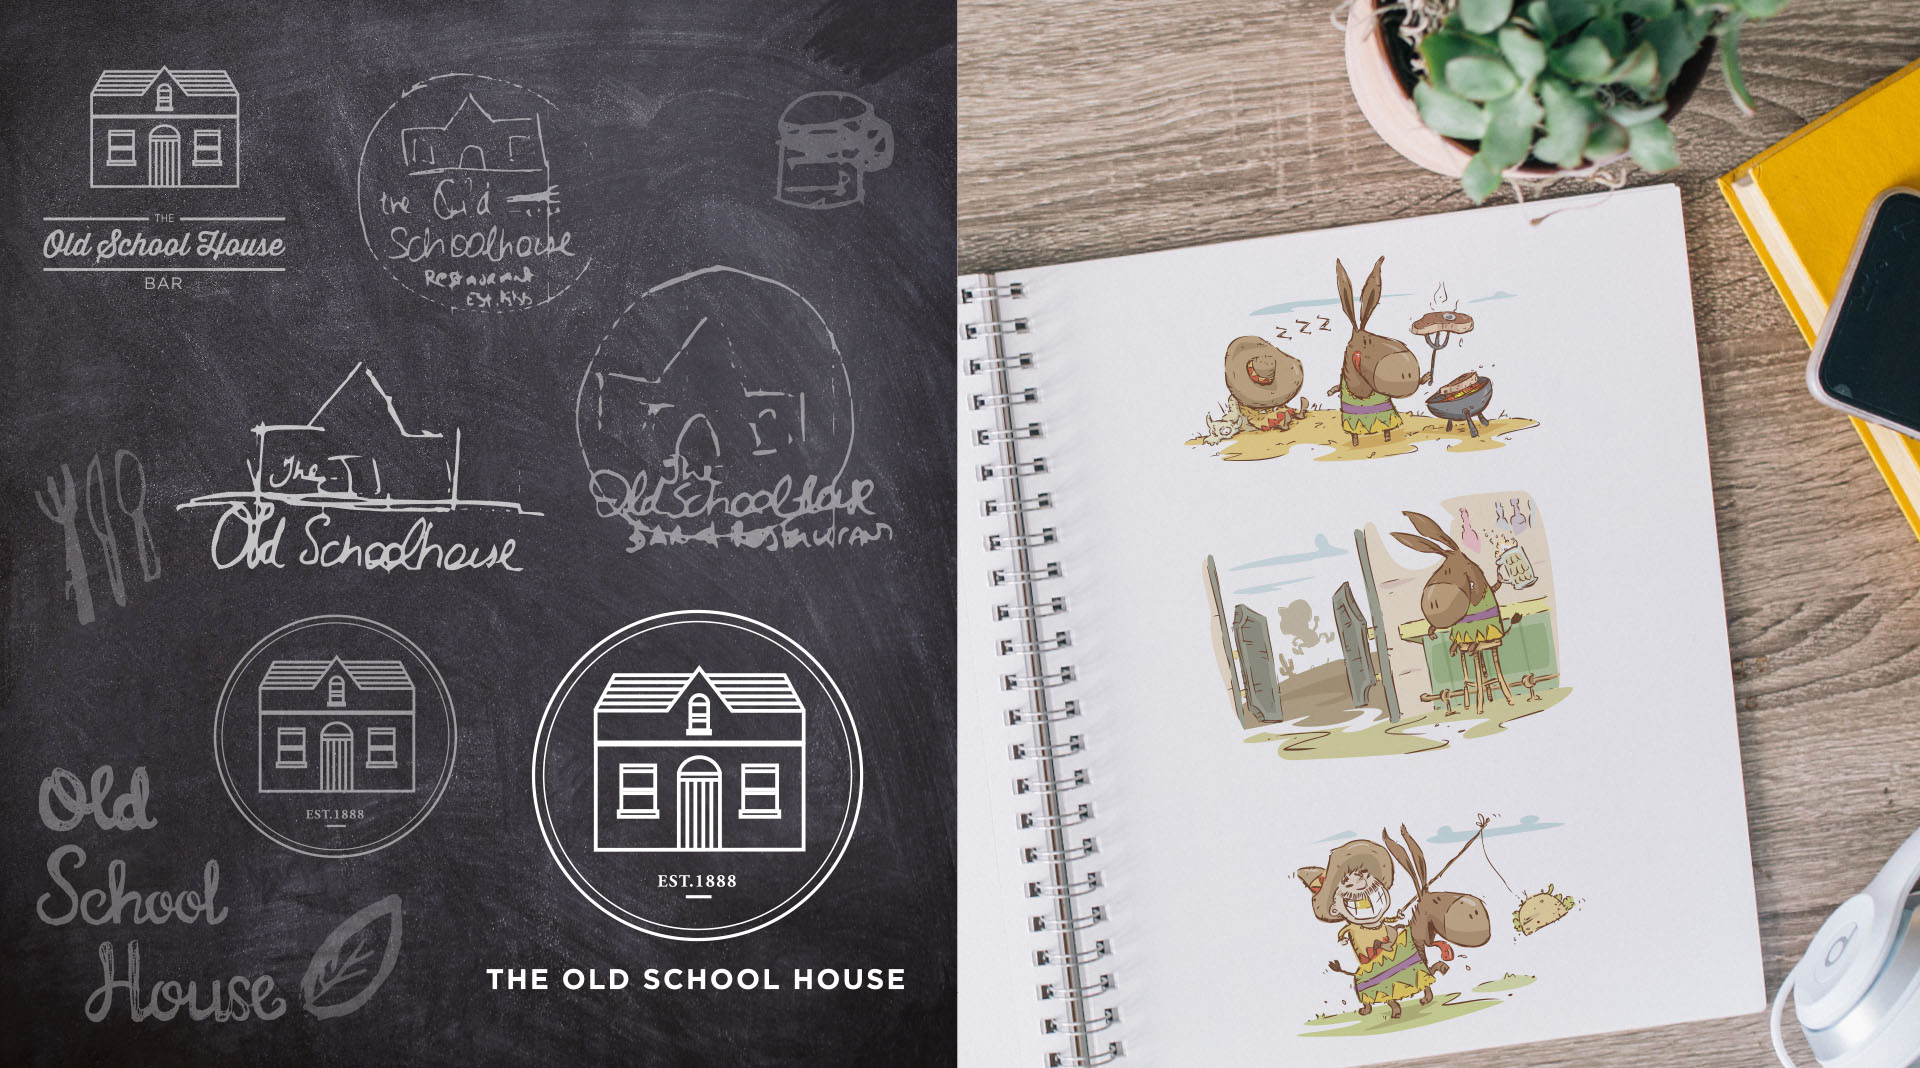 The Old Schoolhouse Brand Development.